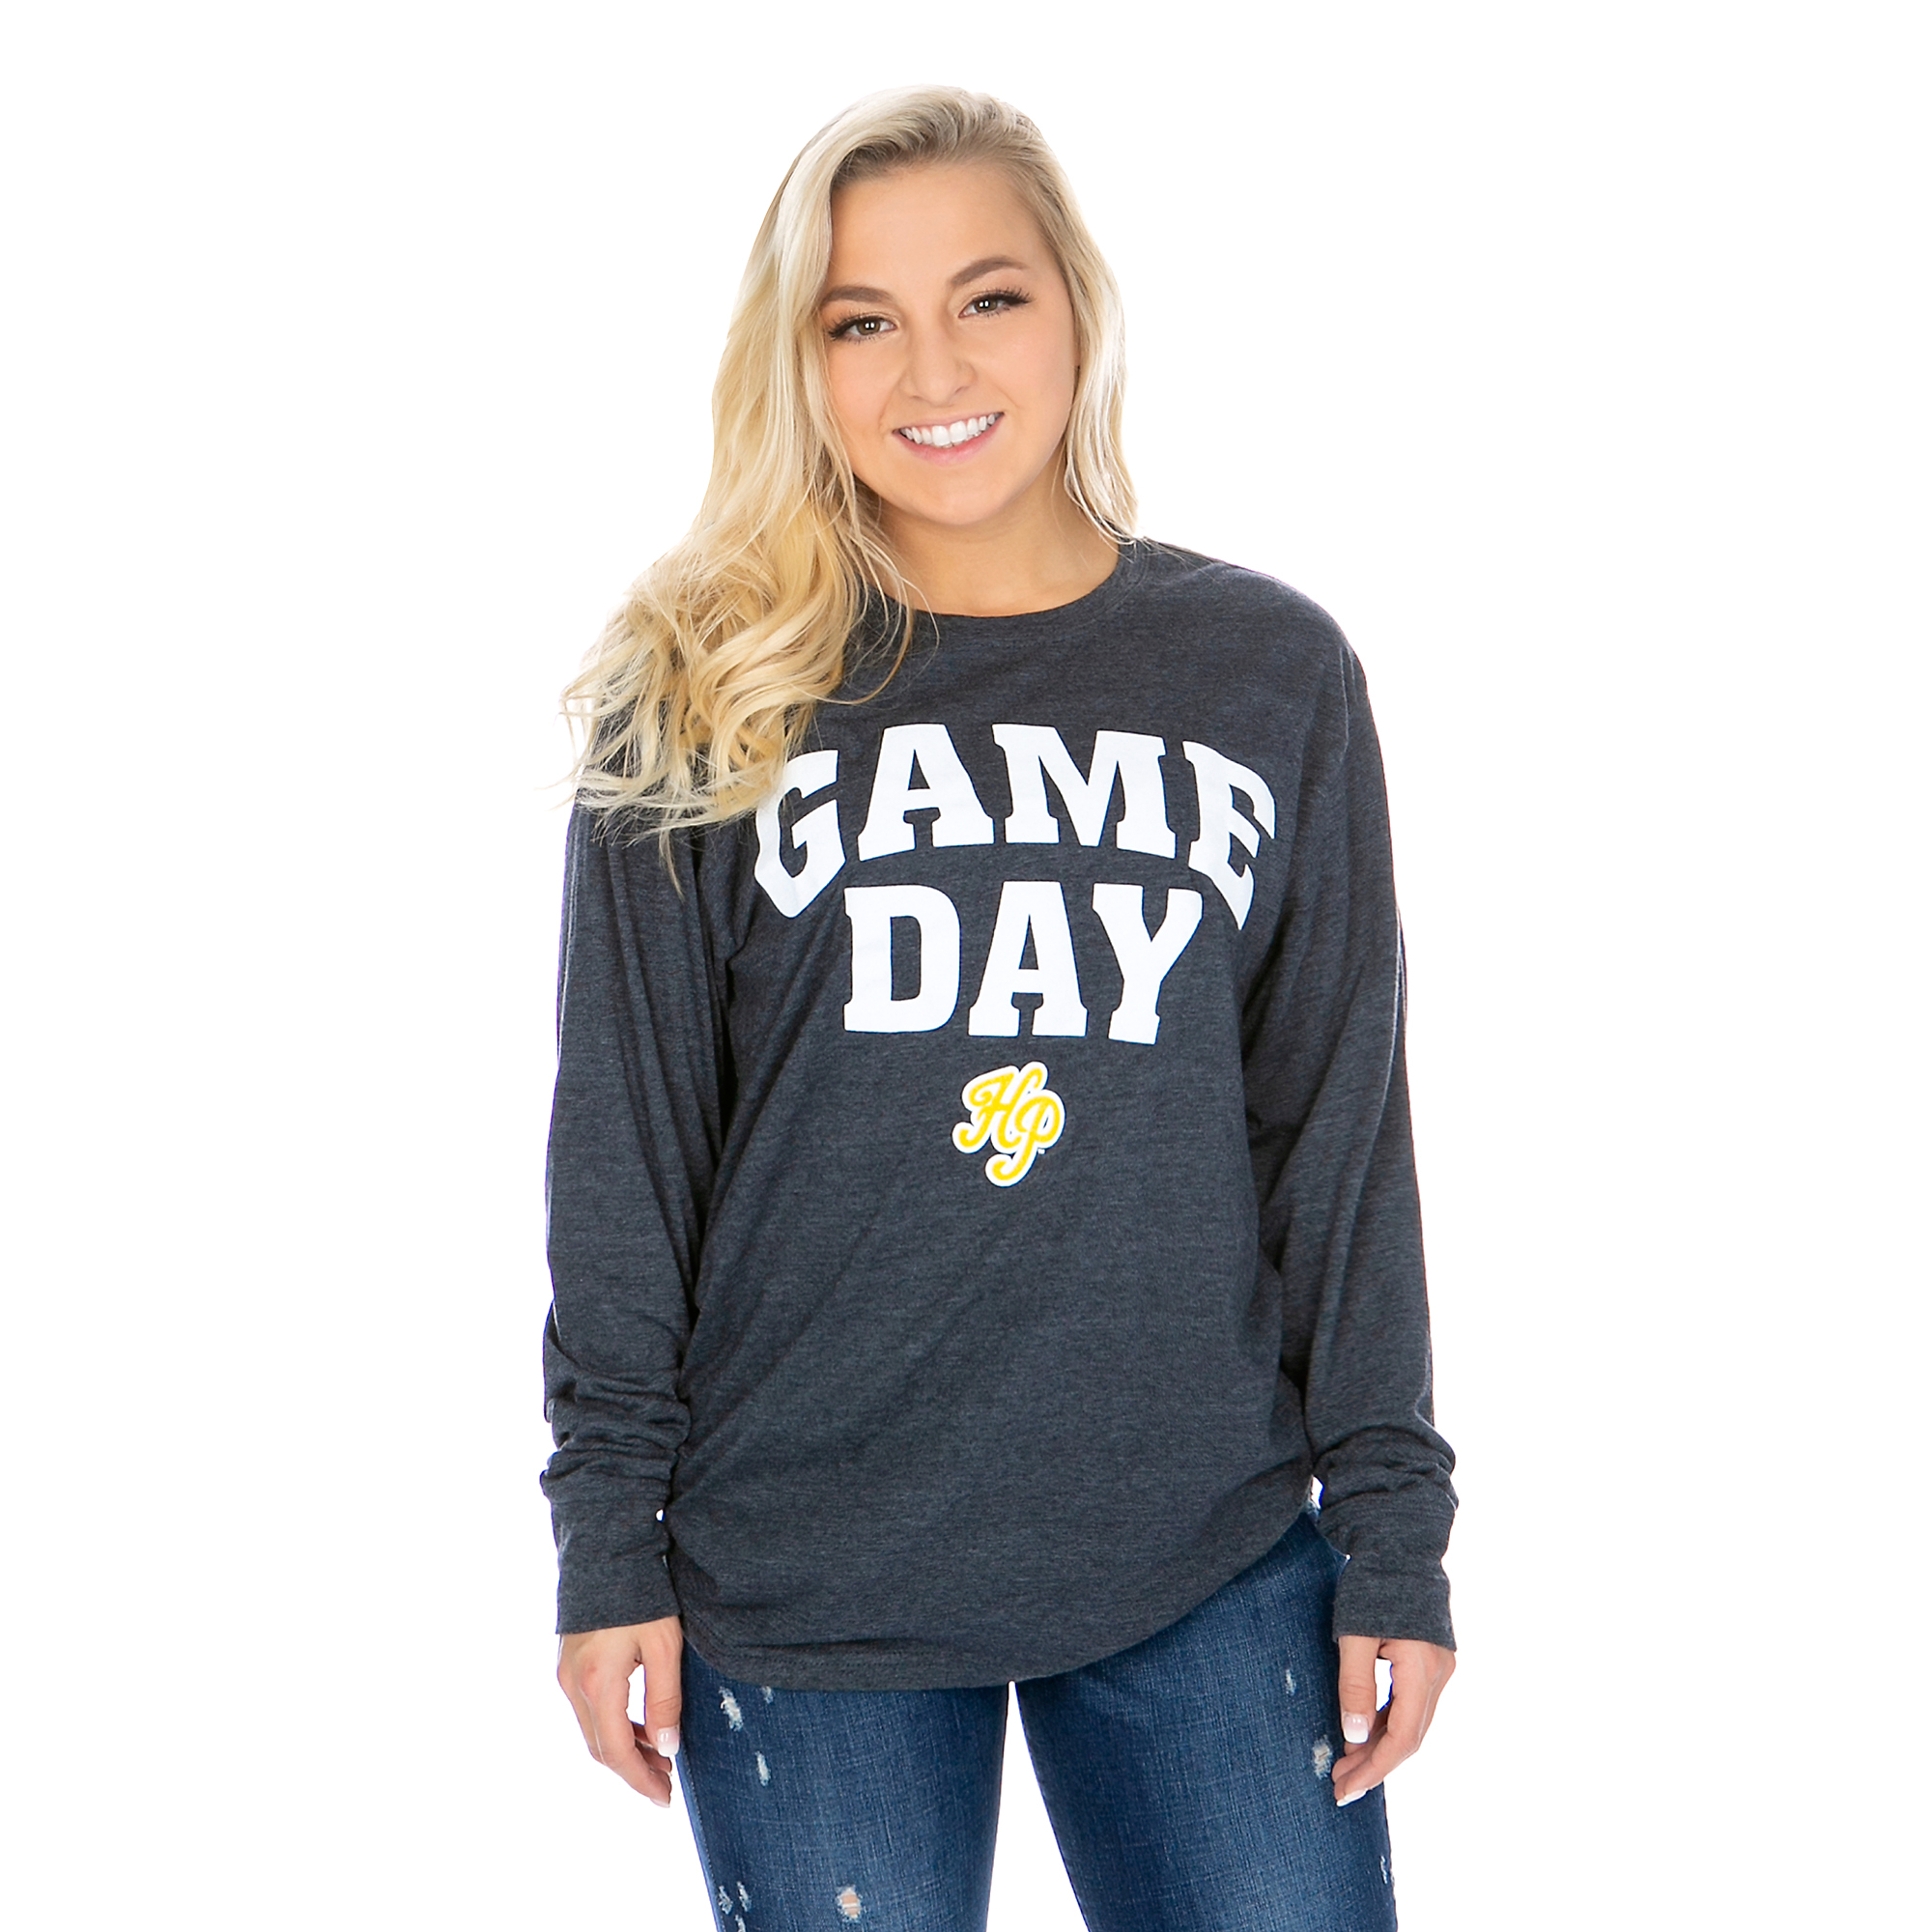 Highland Park Scots Pressbox Womens Game Day Tee